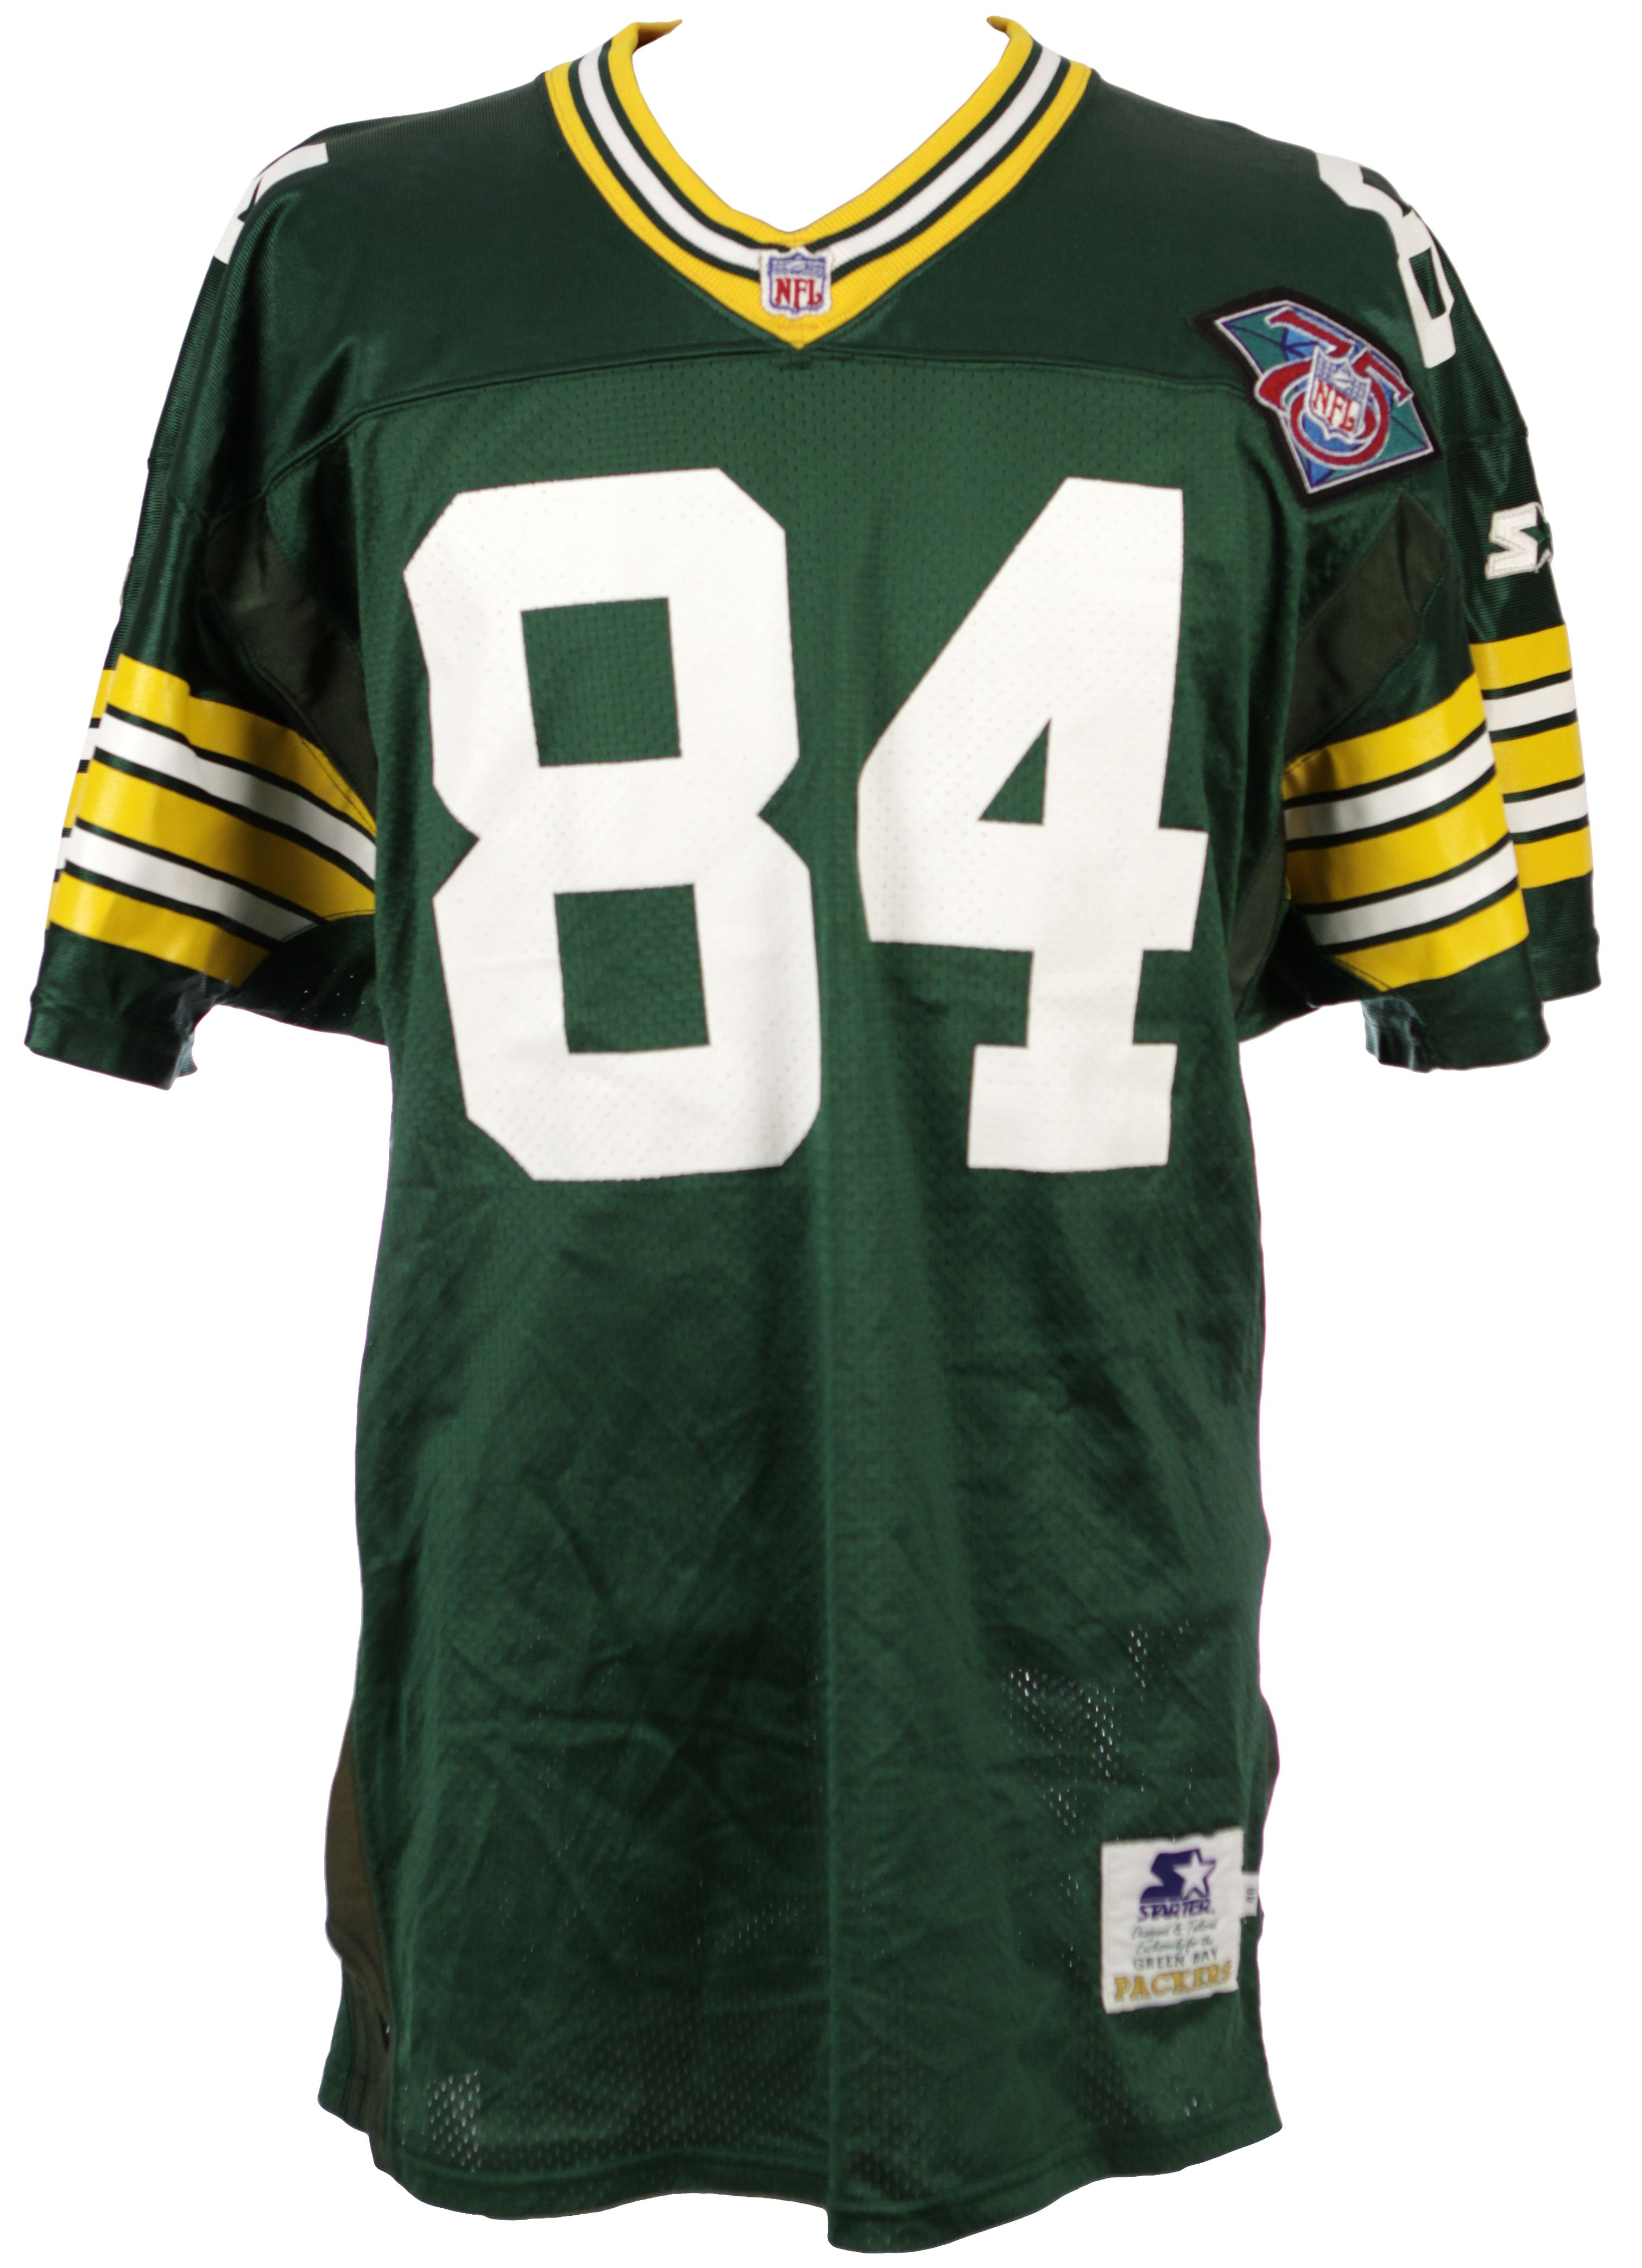 premium selection 016a8 797d0 Jersey Green Packers Authentic Sterling Detail - 1994 W ...